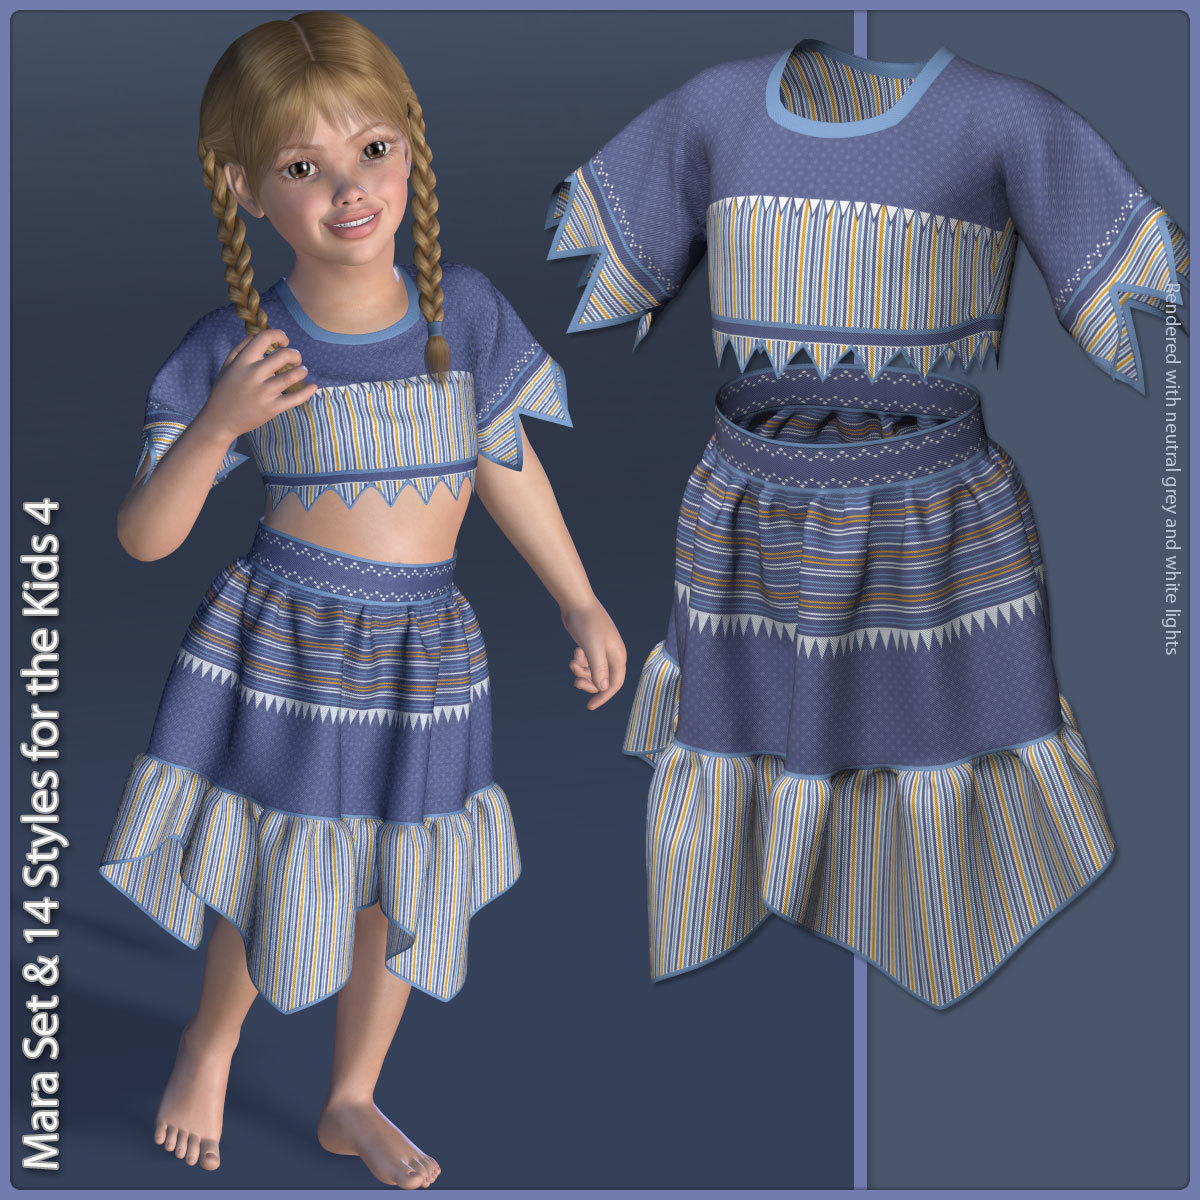 Mara Set and 14 Styles for the Kids 4